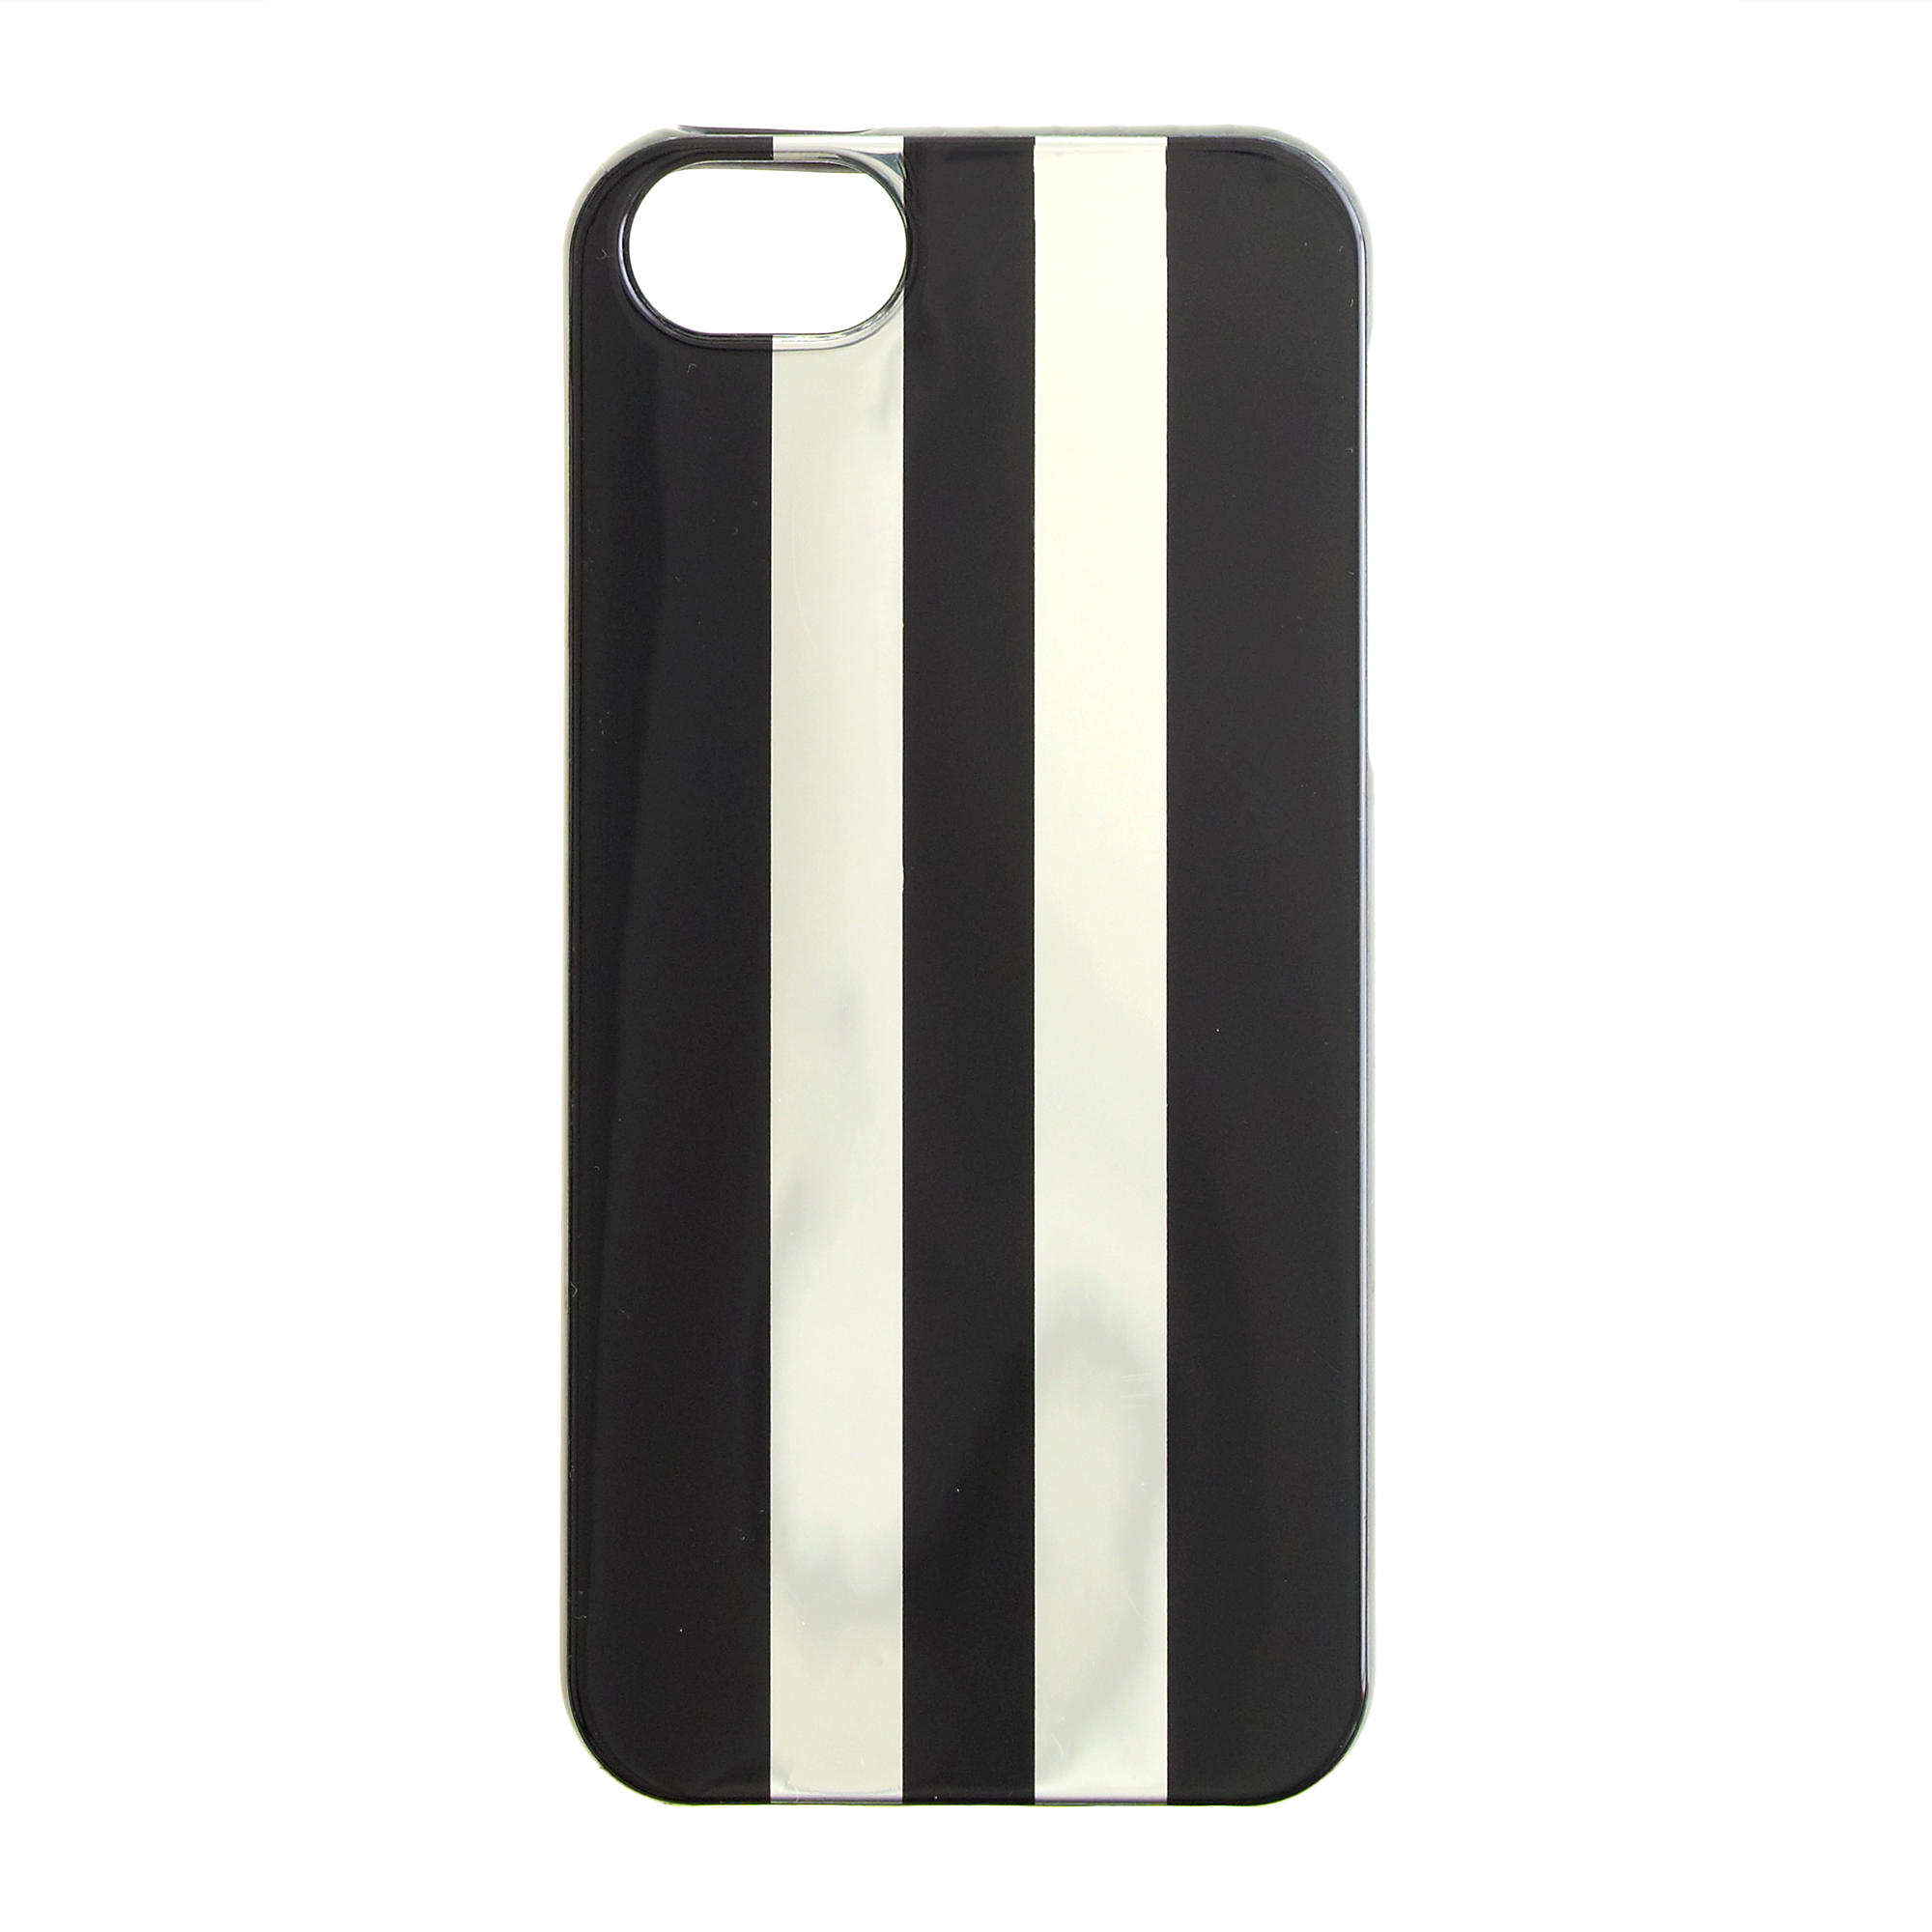 jcrew metallic silver painted stripe rubber case for iphoner 55s silver product 0 normal